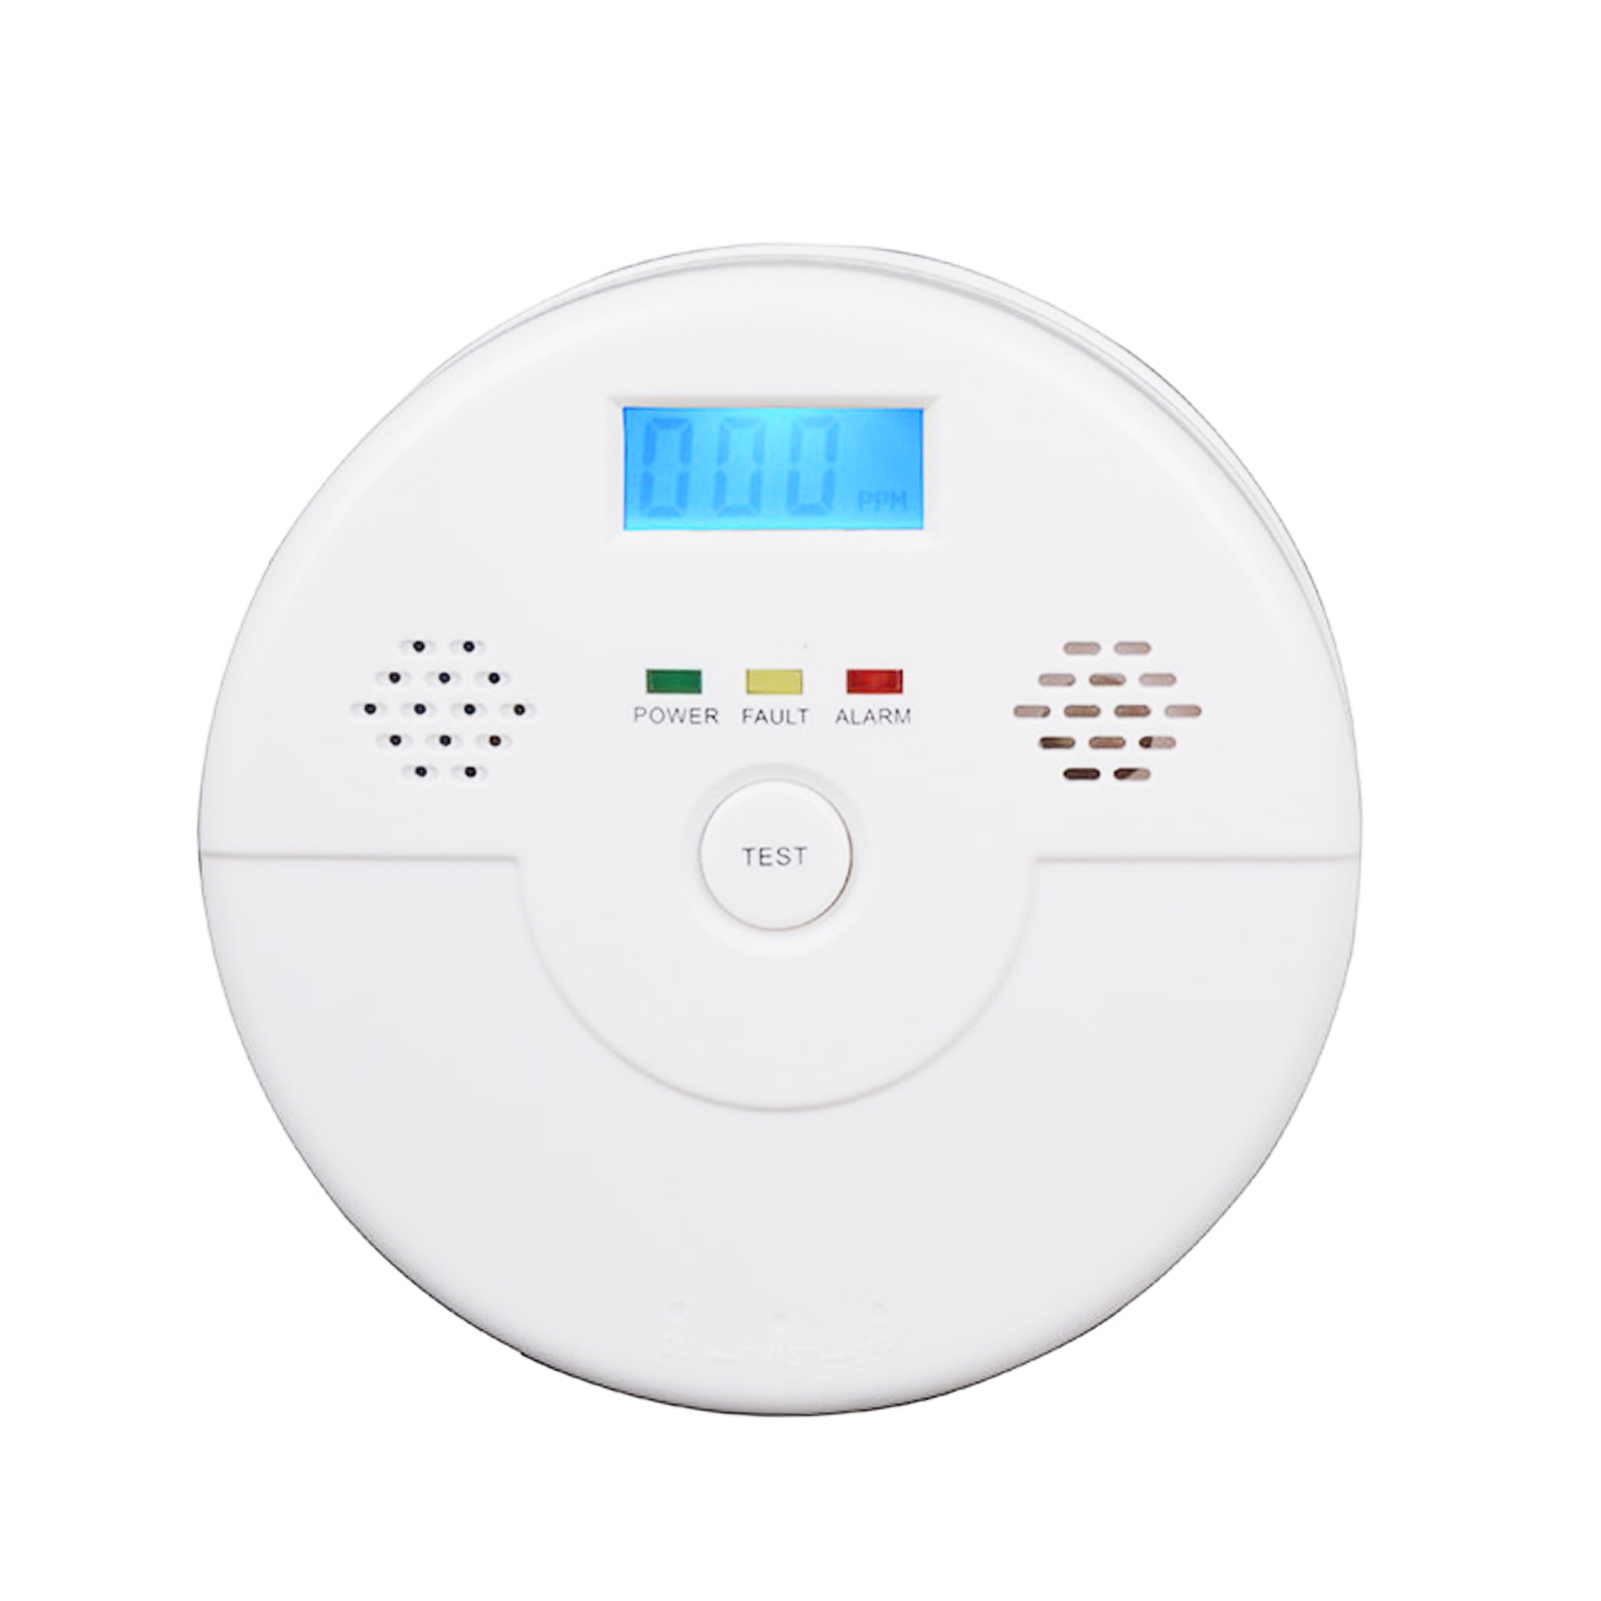 Carbon Monoxide Alarm Detector Co Alarm Detector With Digital Display Household Safety Equipment Powered By Battery Bracing Up The Whole System And Strengthening It